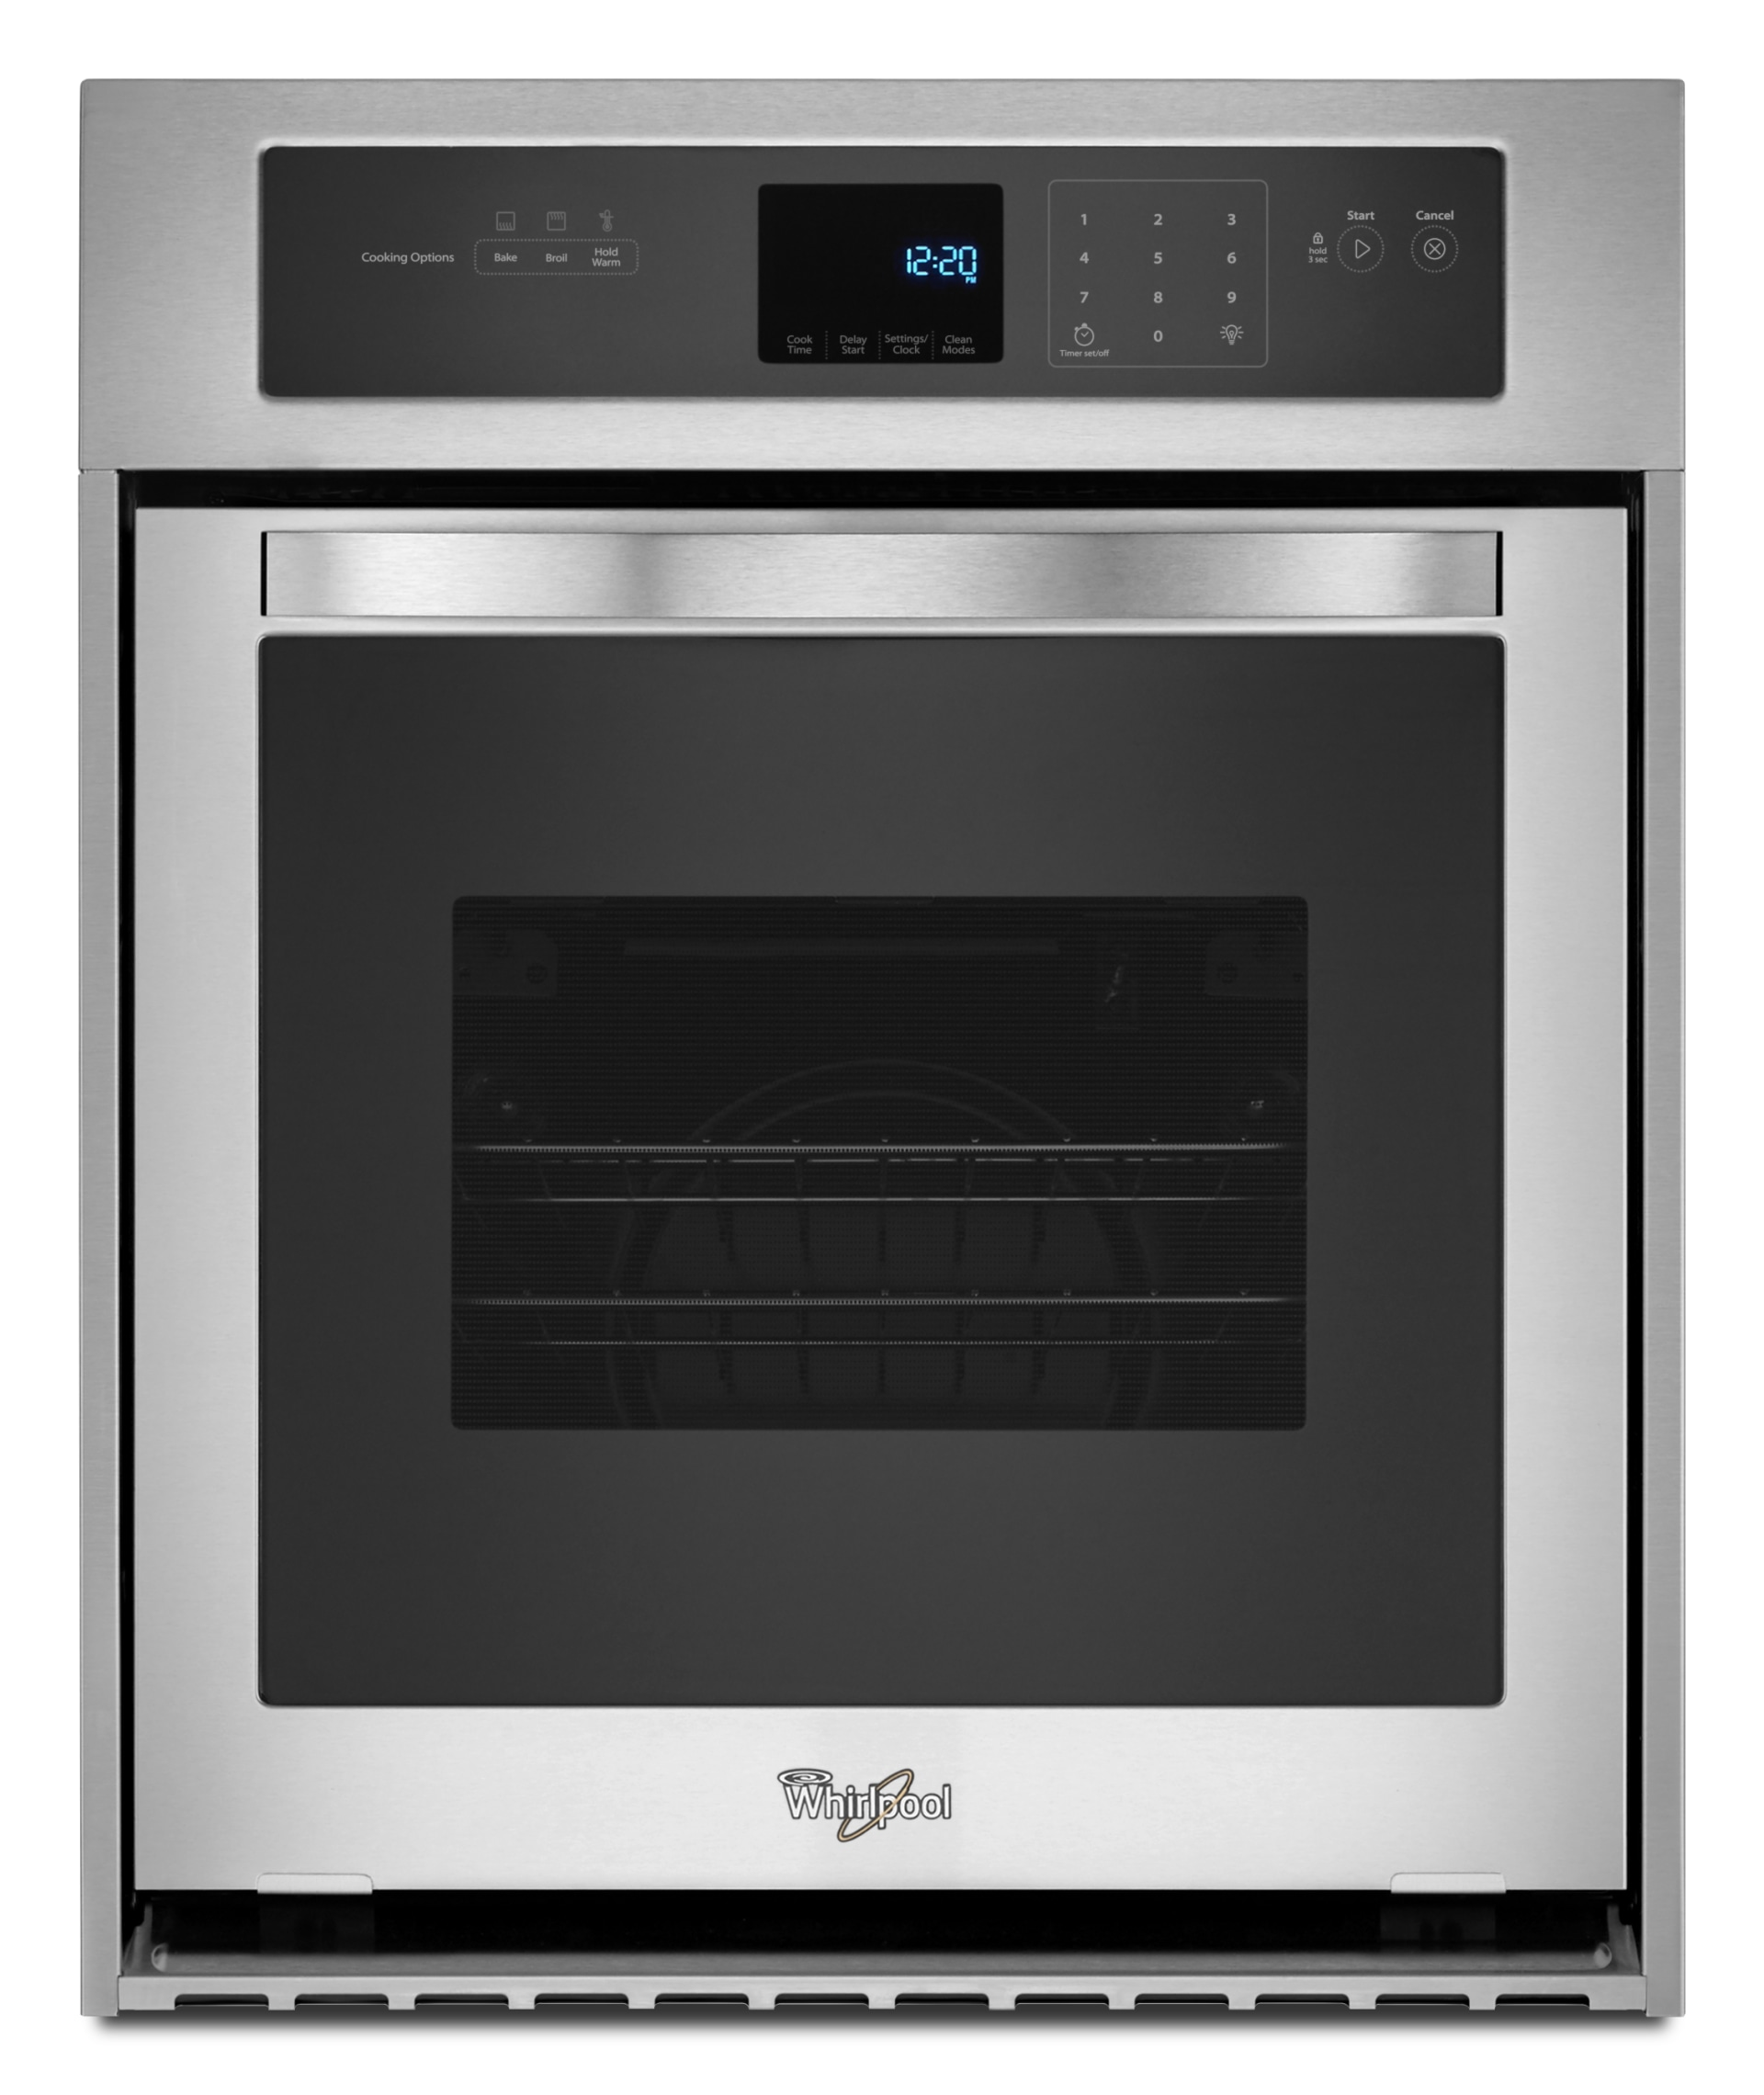 wos51es4es whirlpool 24 inch wide 3 1 cu ft single wall oven with high heat self cleaning system stainless steel